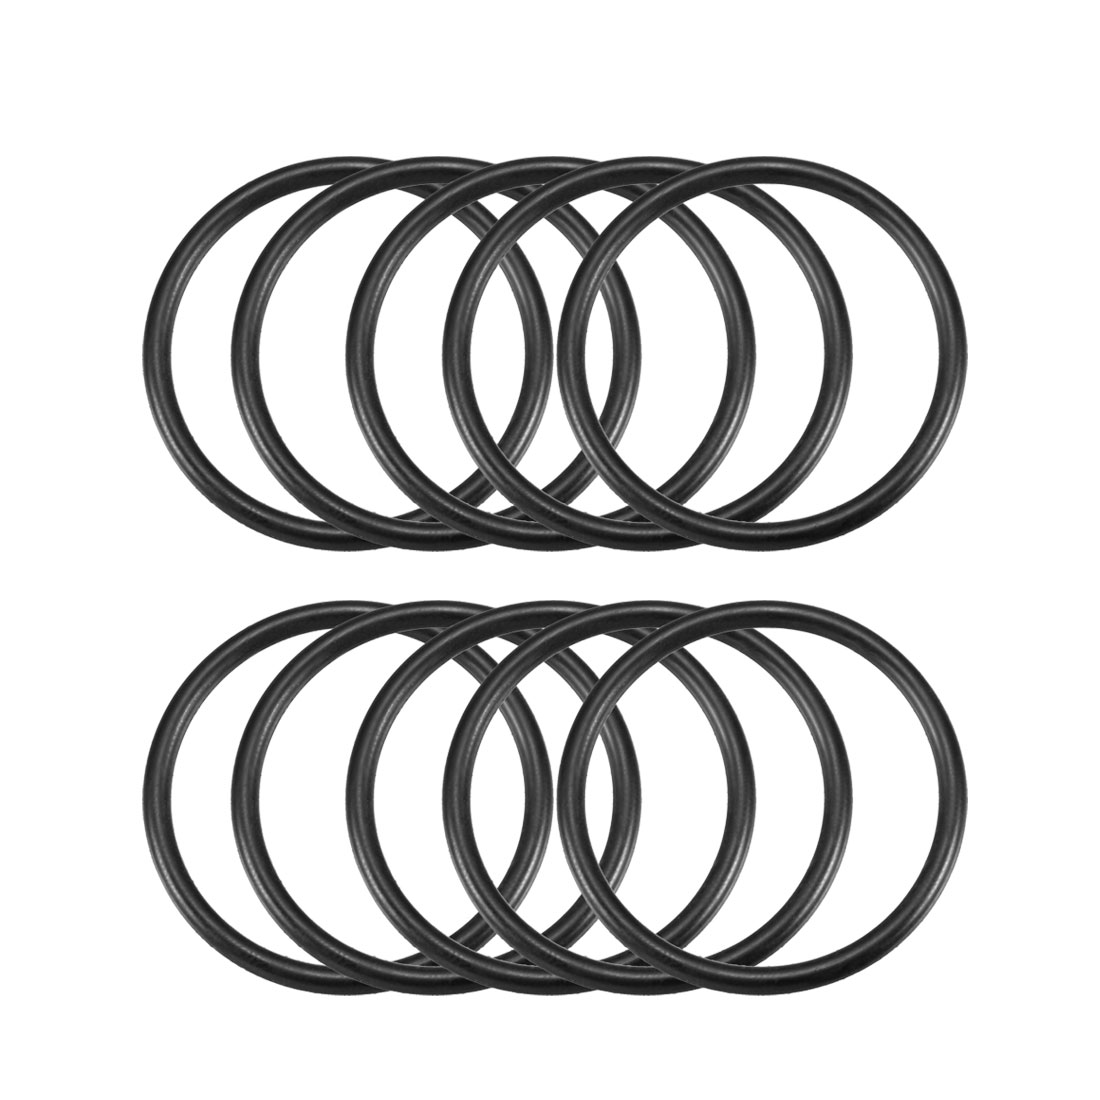 10 Pcs 37.8mm x 32.5mm x 2.65mm Black Silicone O Rings Oil Seals Gaskets